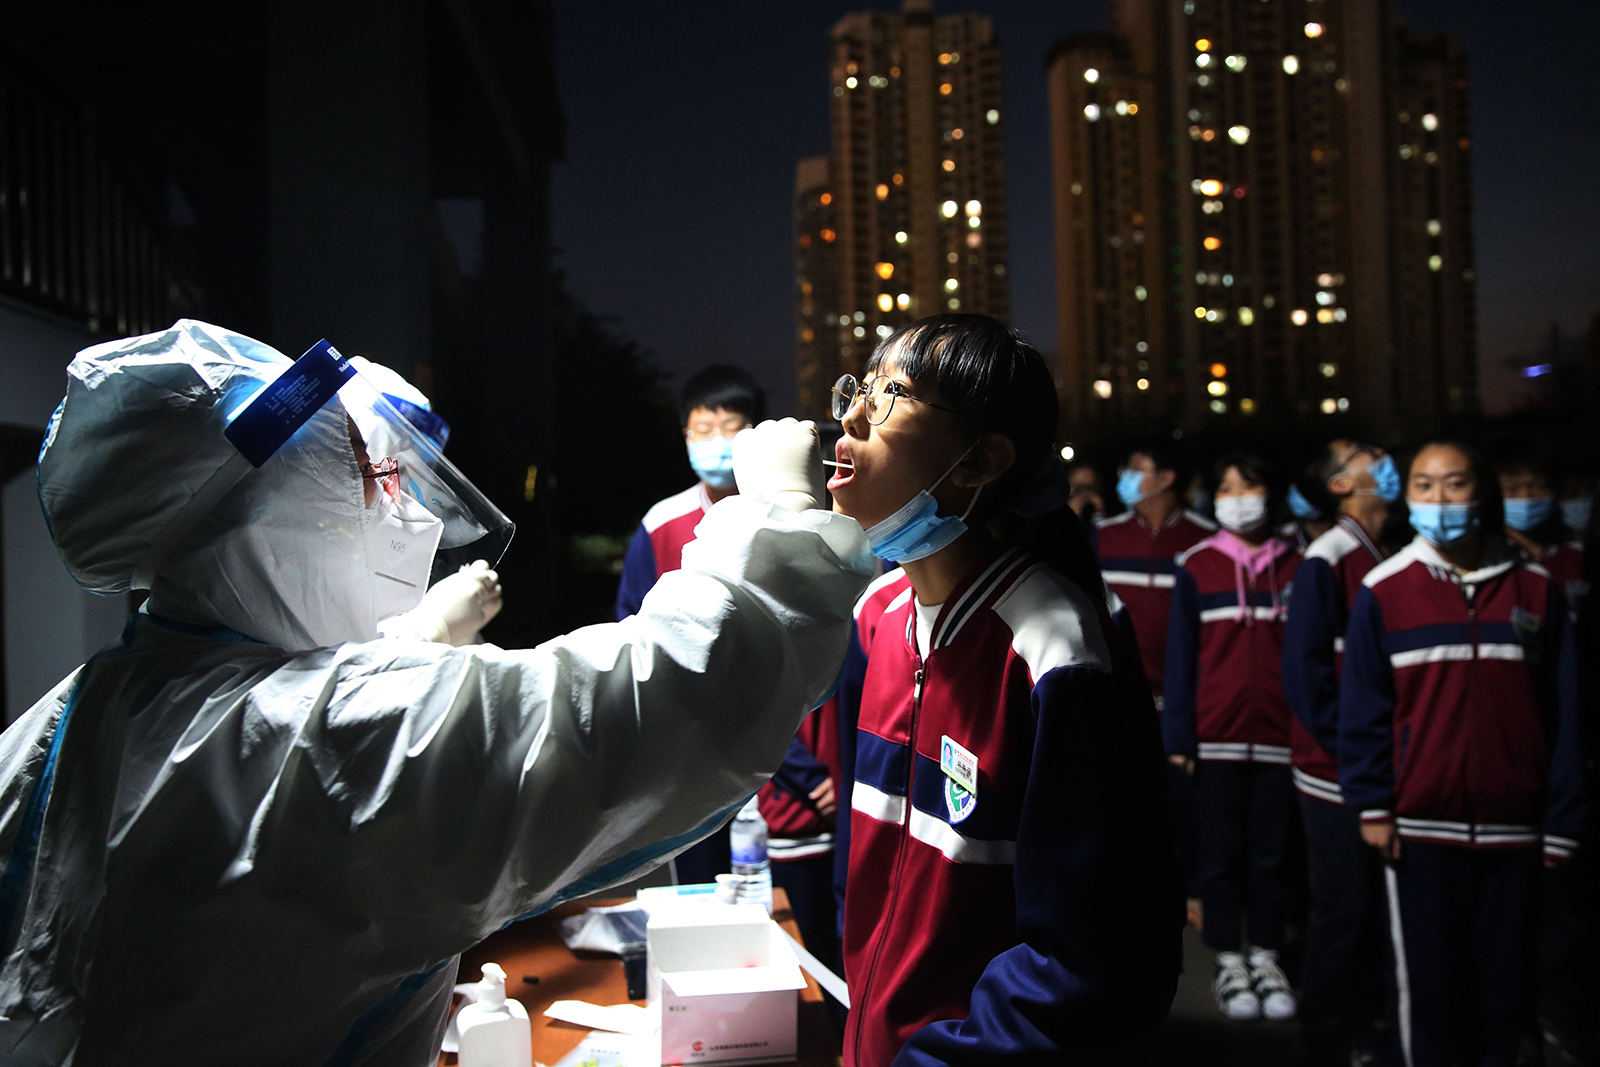 This photo taken on October 12 shows a health worker taking a swab from a middle school student to be tested for Covid-19, as part of a mass testing program following a new coronavirus outbreak in Qingdao, in China's eastern Shandong province.